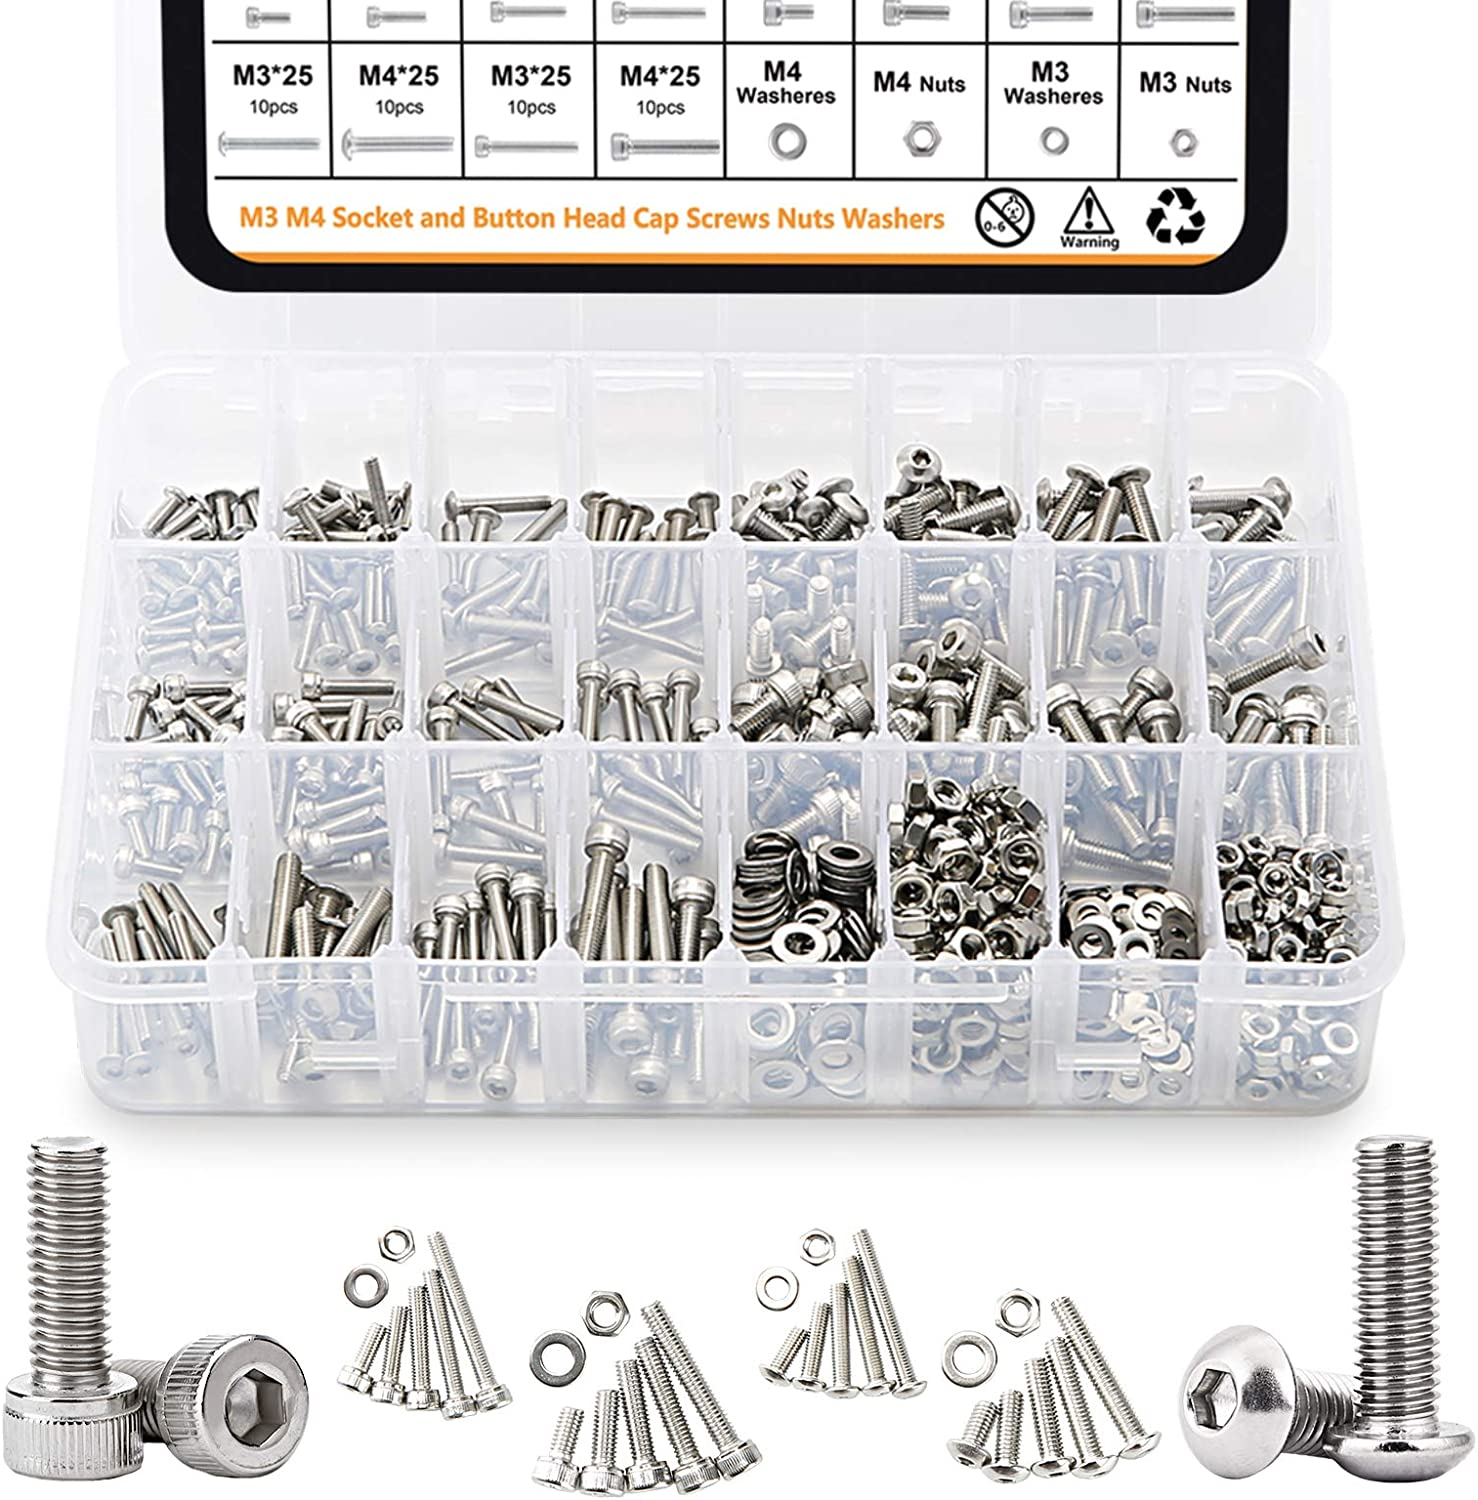 GTERNITY Metric M3 M4 Screws Assorted Hex Head Screws Nuts Washers Kit with Wrench 304 Stainless Steel 880PCS Bolts and Nuts Assortment Button Head/&Socket Head